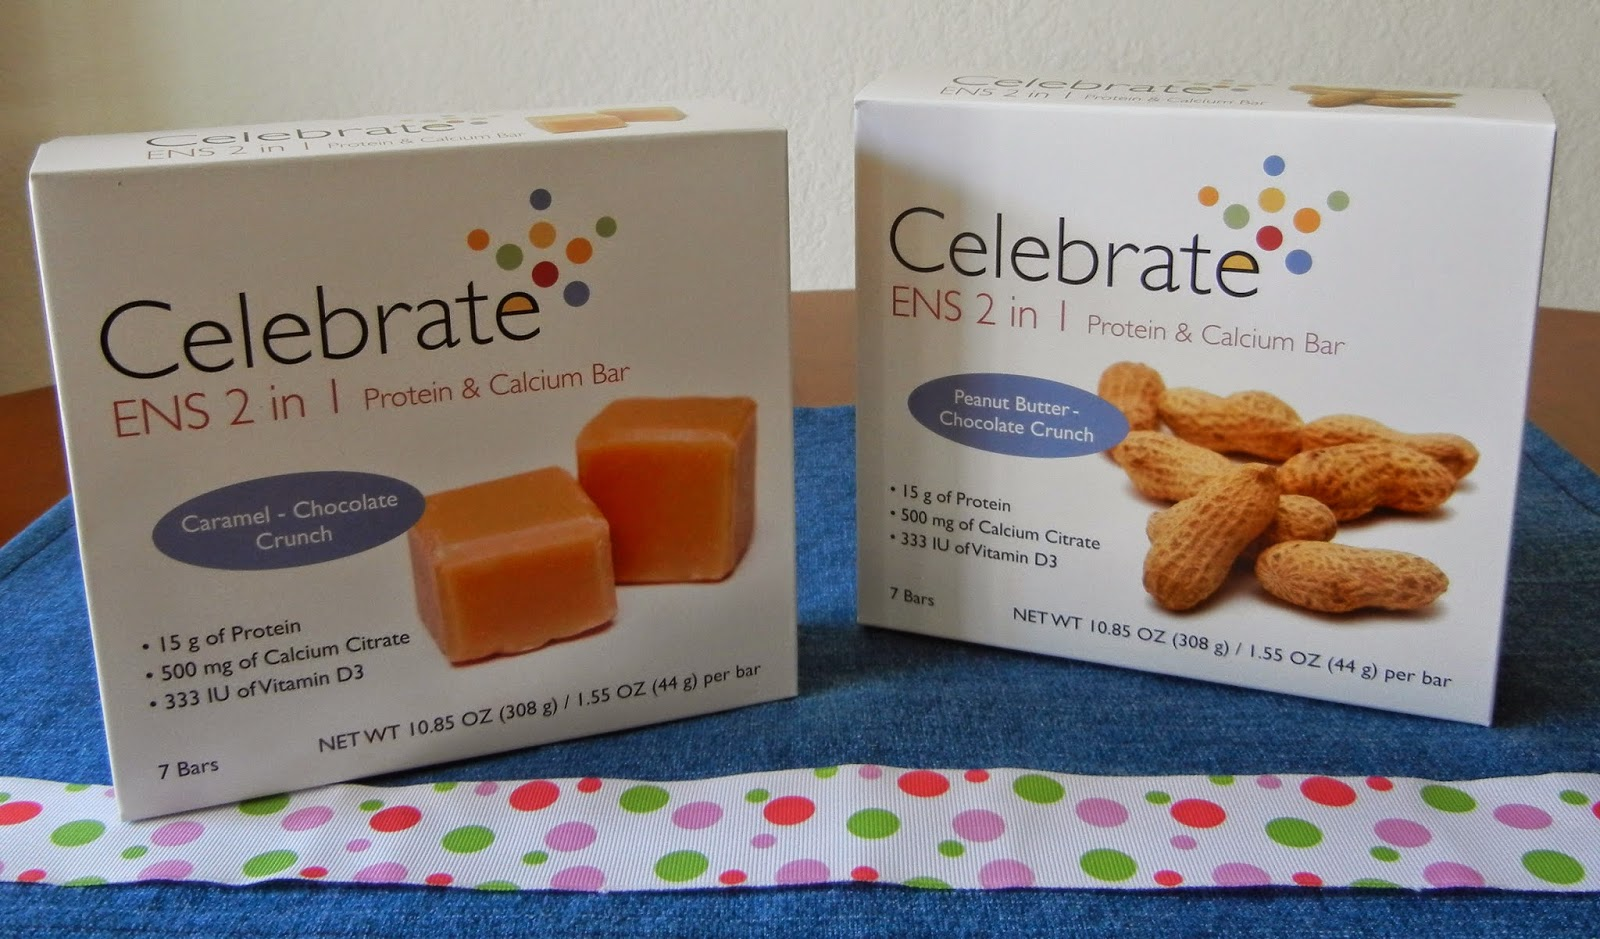 Celebrate+Vitamins+ENS+2+in+1+Protein+and+Calcium+Bar+Eggface Weight Loss Recipes Eggface and Celebrate Vitamins ENS 2 in 1 Protein Bar Giveaway